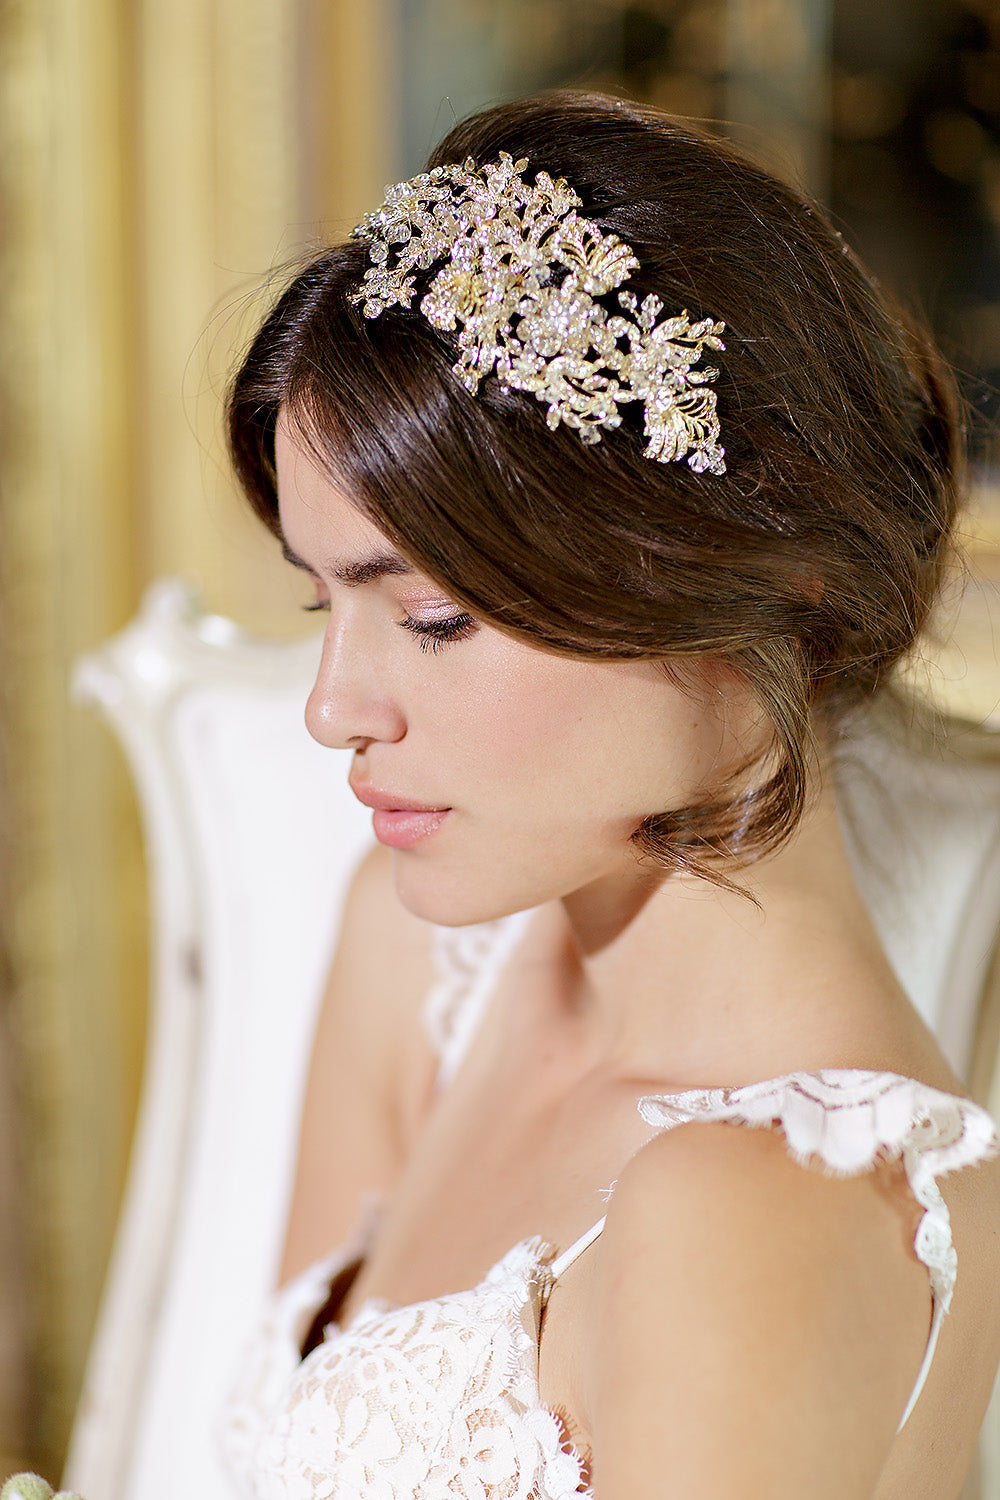 How to choose the right bridal hair accessory